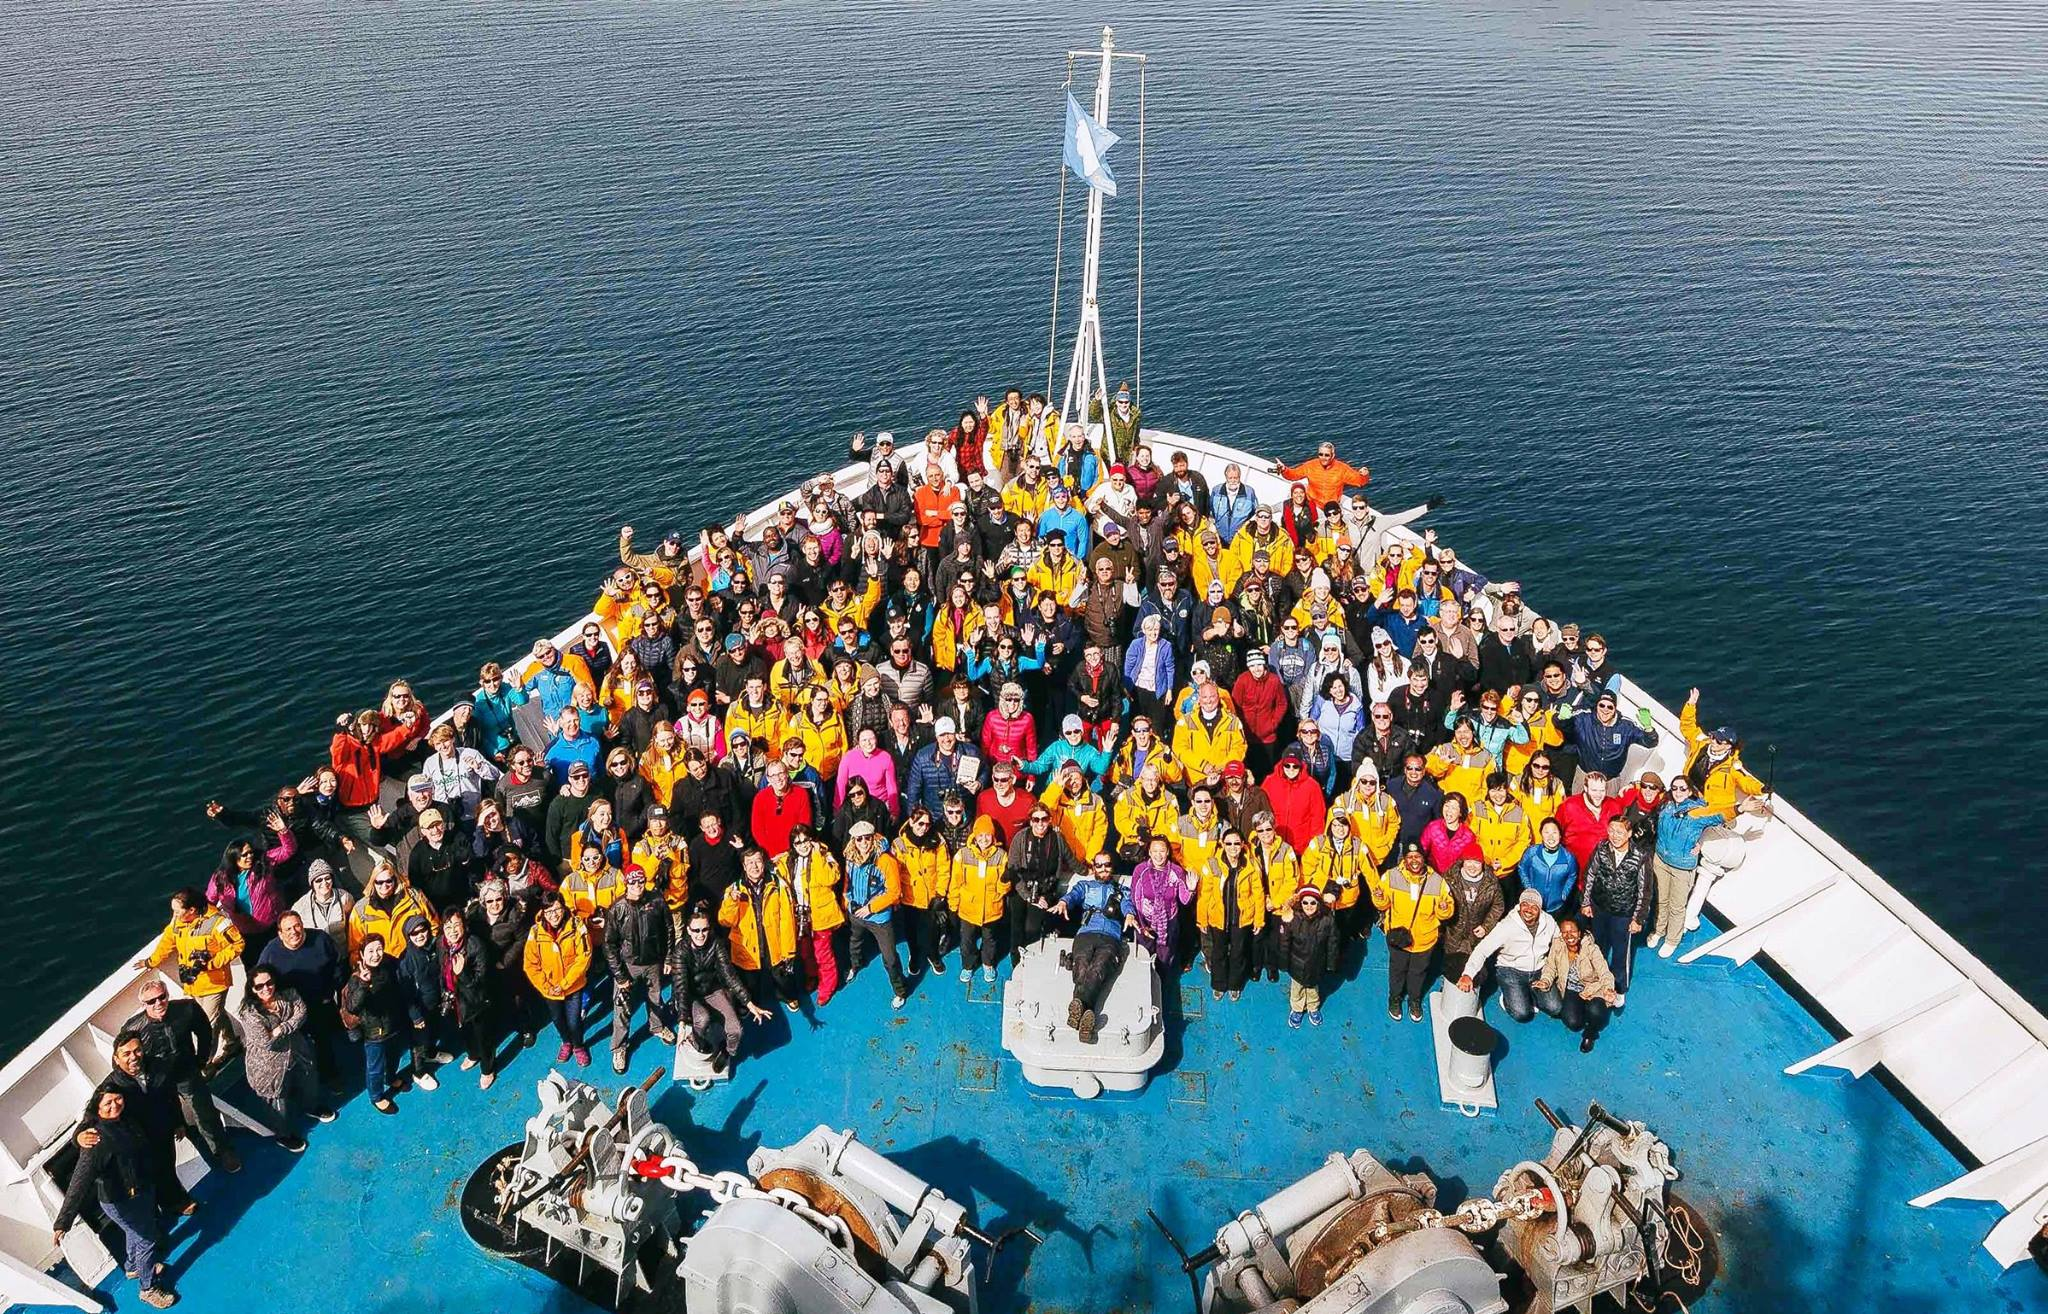 Passengers, crew and expedition team get together for a celebratory group shot on the bow of Ocean Endeavour at the end of their holiday season expedition to Antarctica.